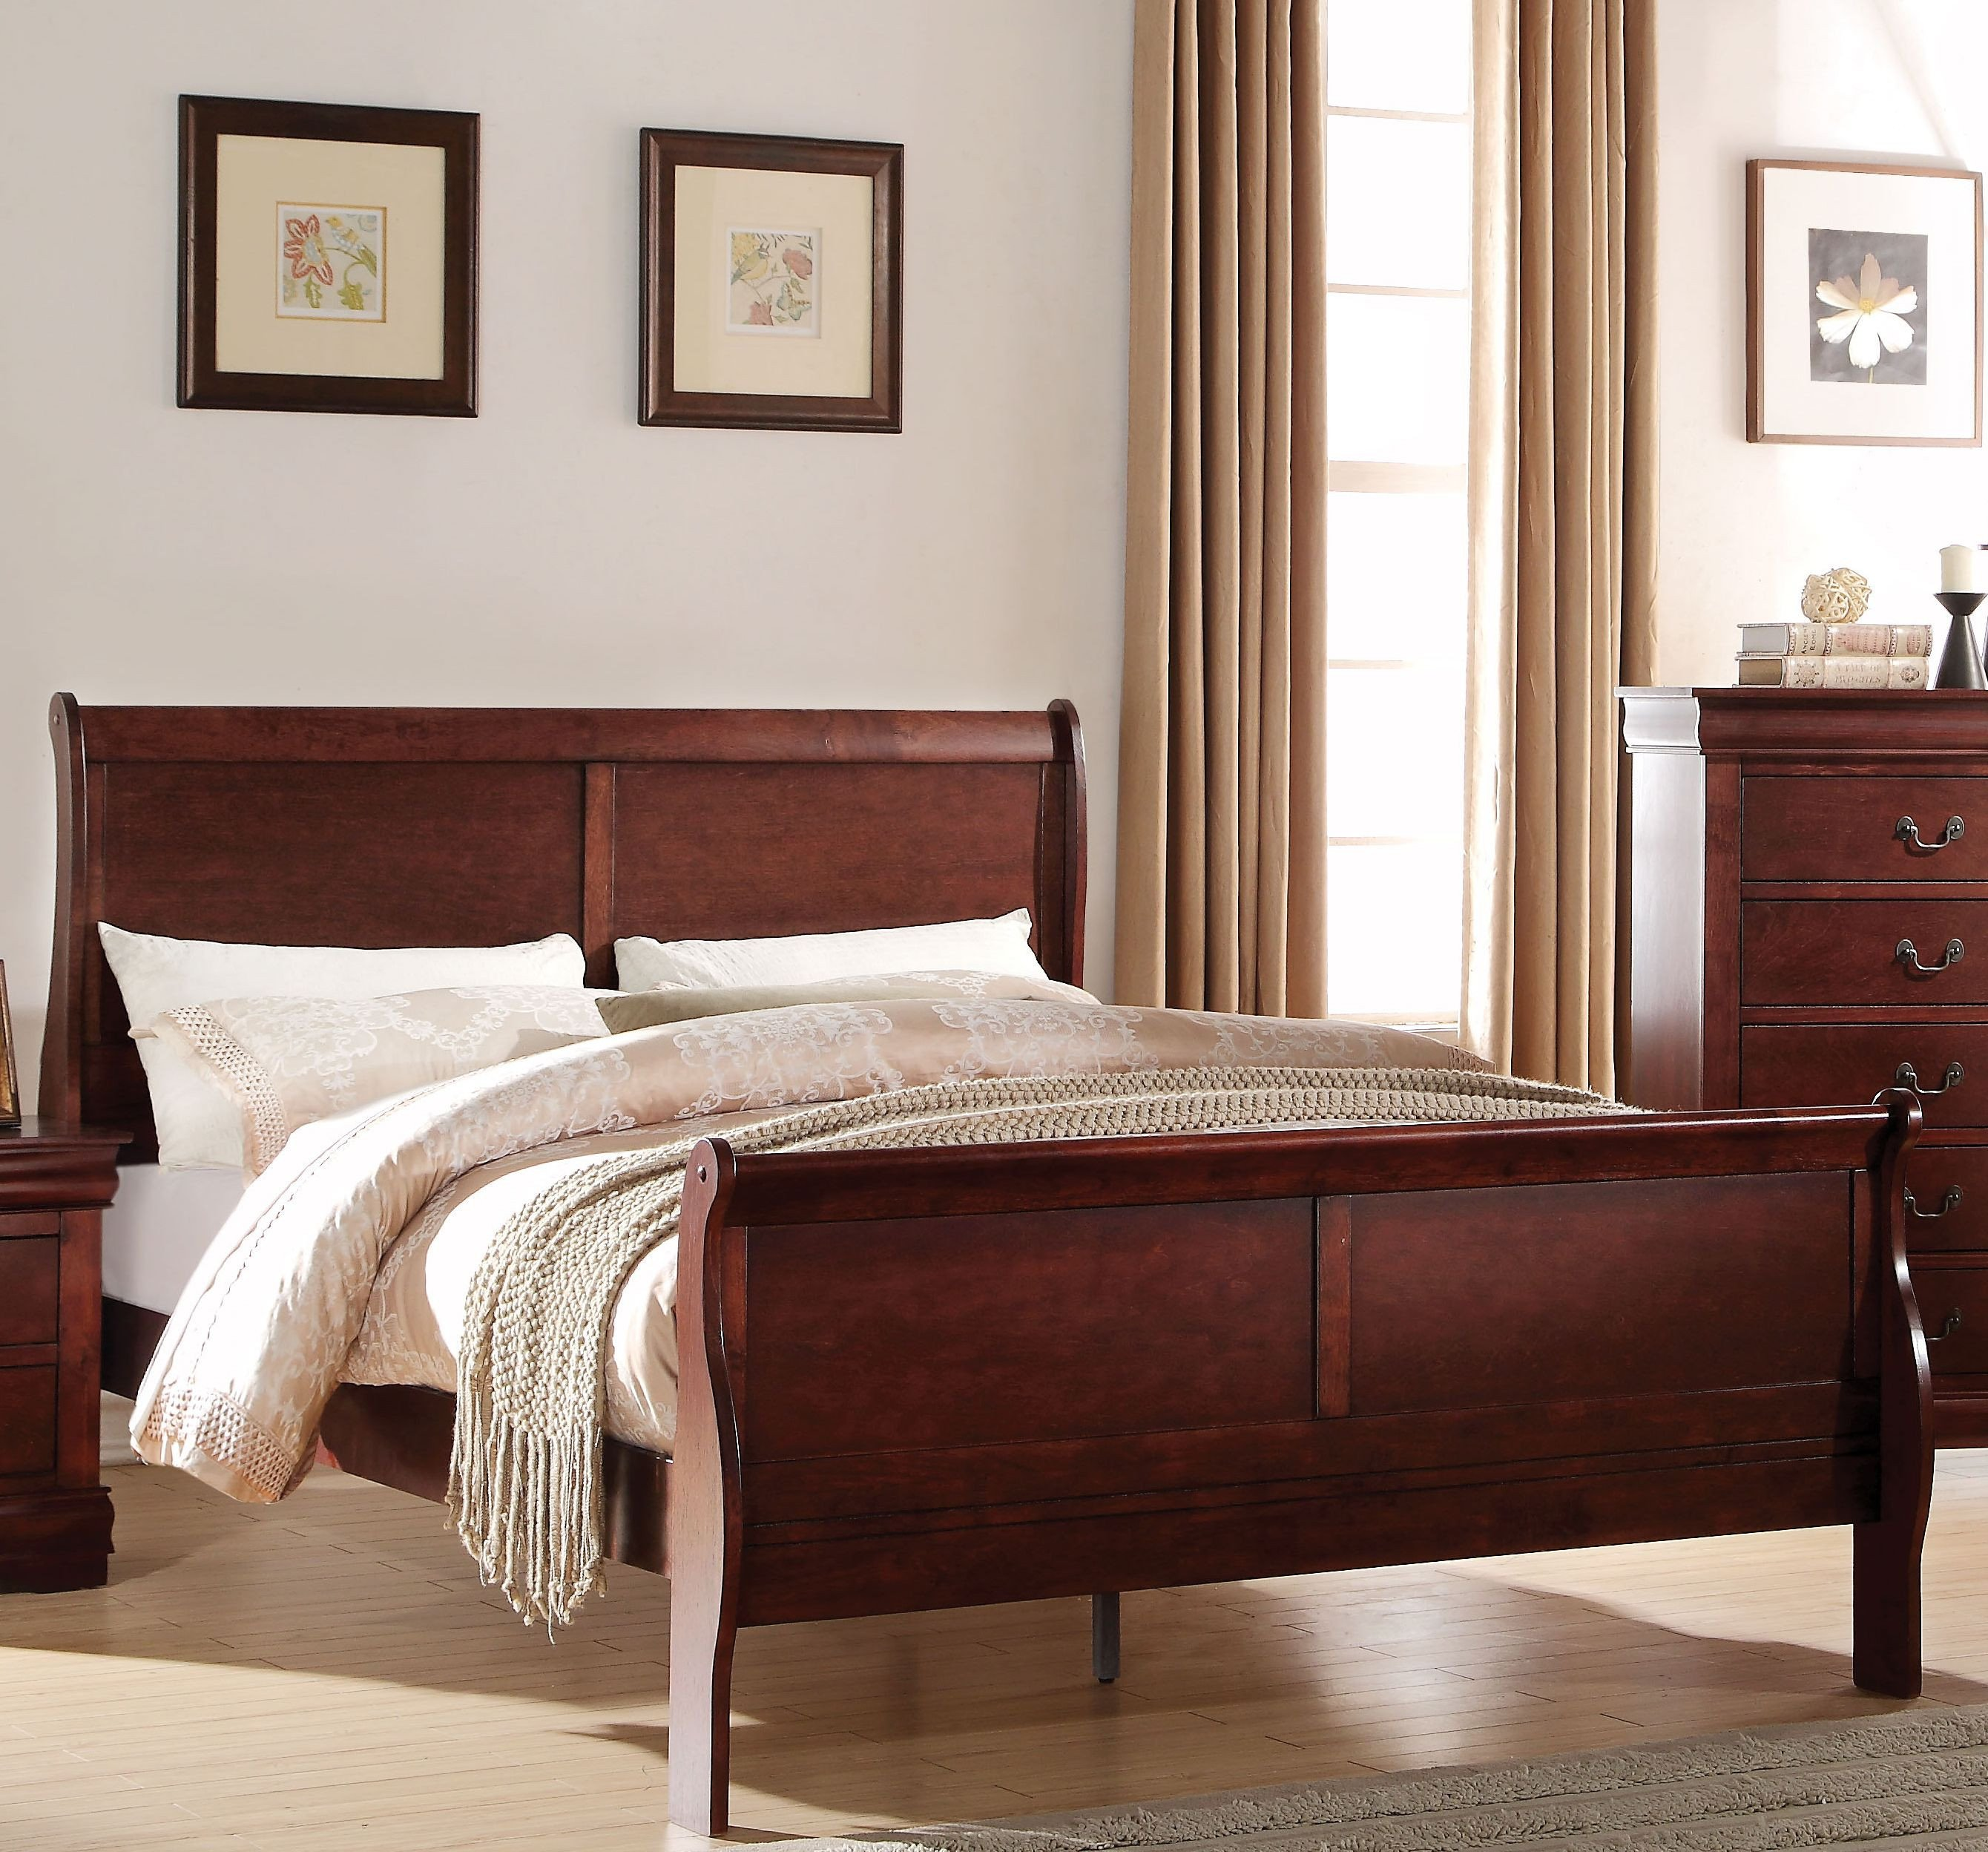 4 Piece Queen Bedroom Set Inspirational Acme Louis Philippe Queen Panel Bed In Cherry Q